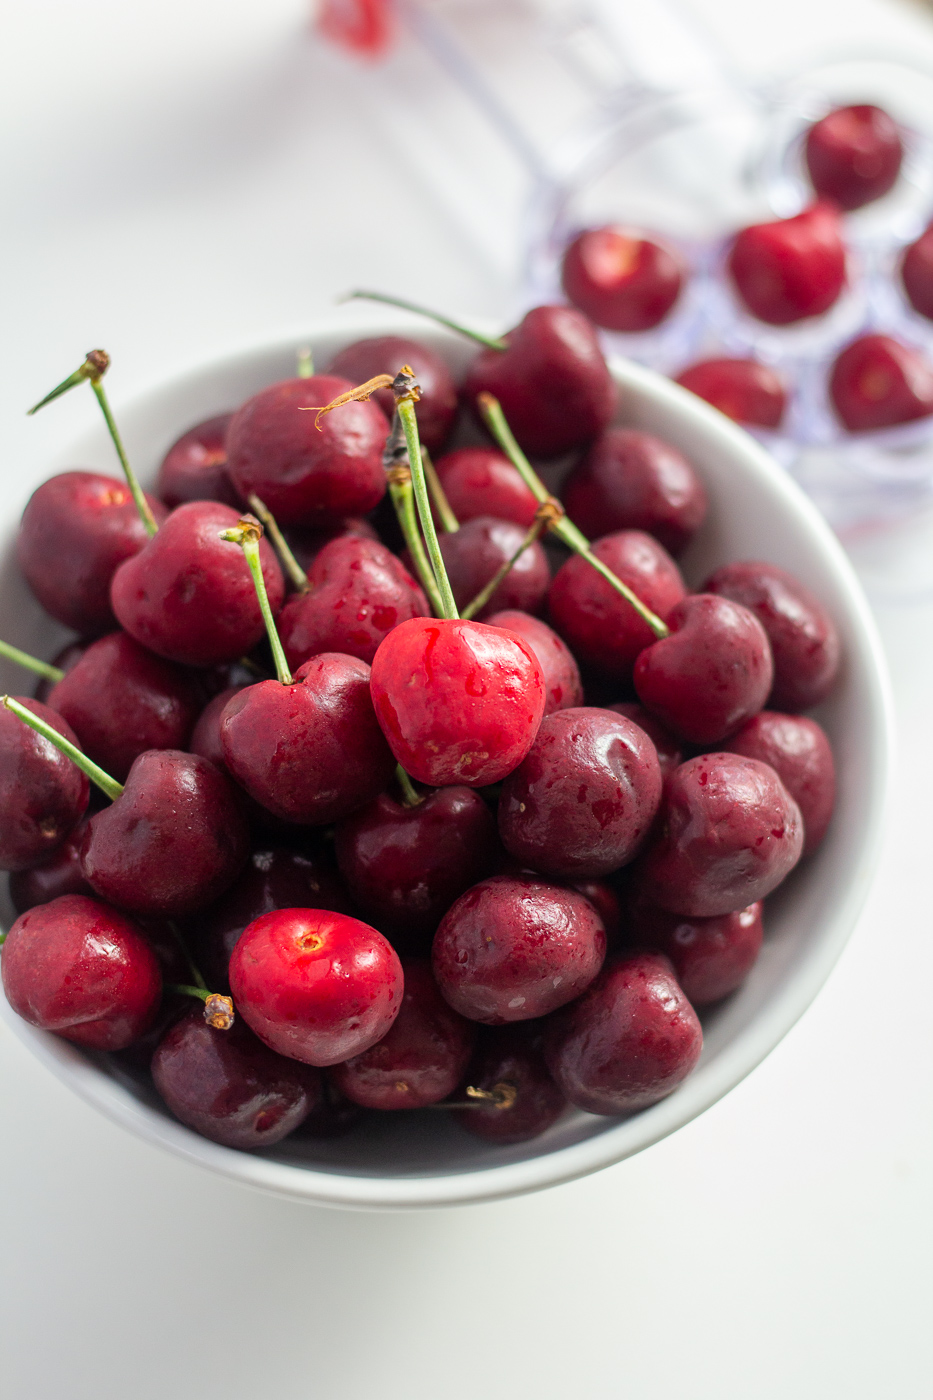 Meet Your Ingredients: Cherries